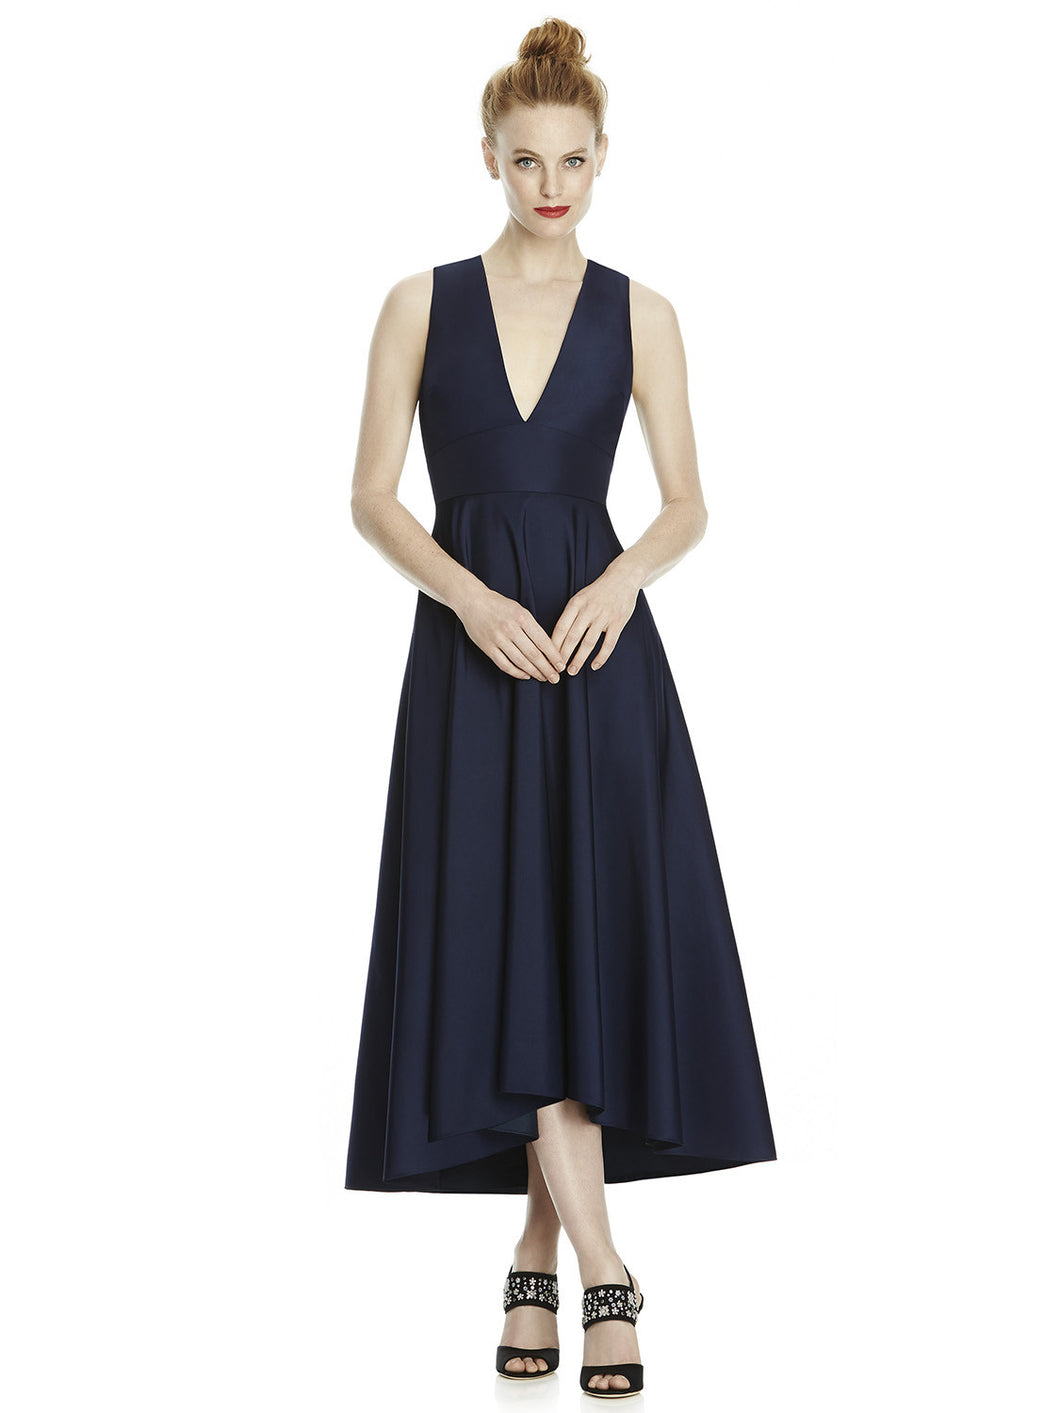 LELA ROSE BRIDESMAID DRESSES: LELA ROSE LR 242